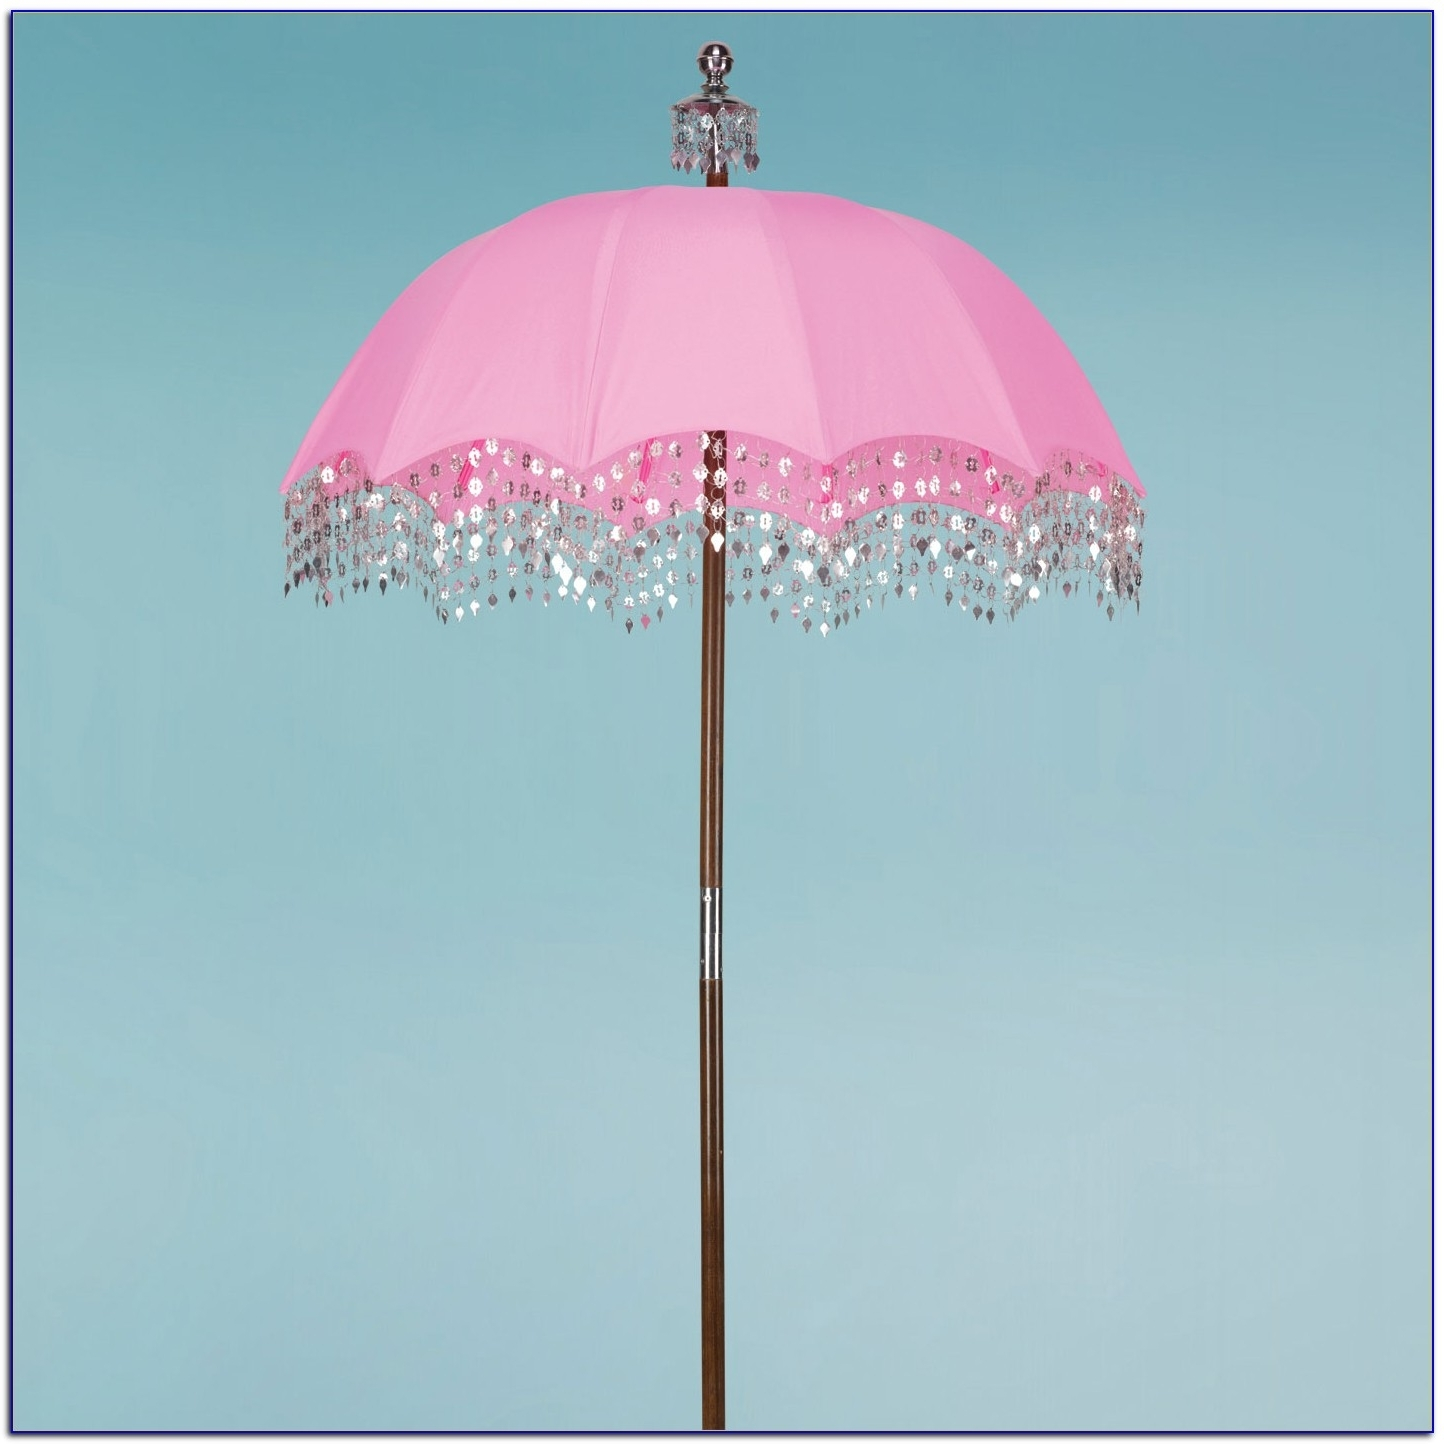 55 Pinks Patio, Pink Patio Umbrella Ebay; Ebay Patio Table Umbrella Pertaining To Most Up To Date Pink Patio Umbrellas (View 2 of 20)